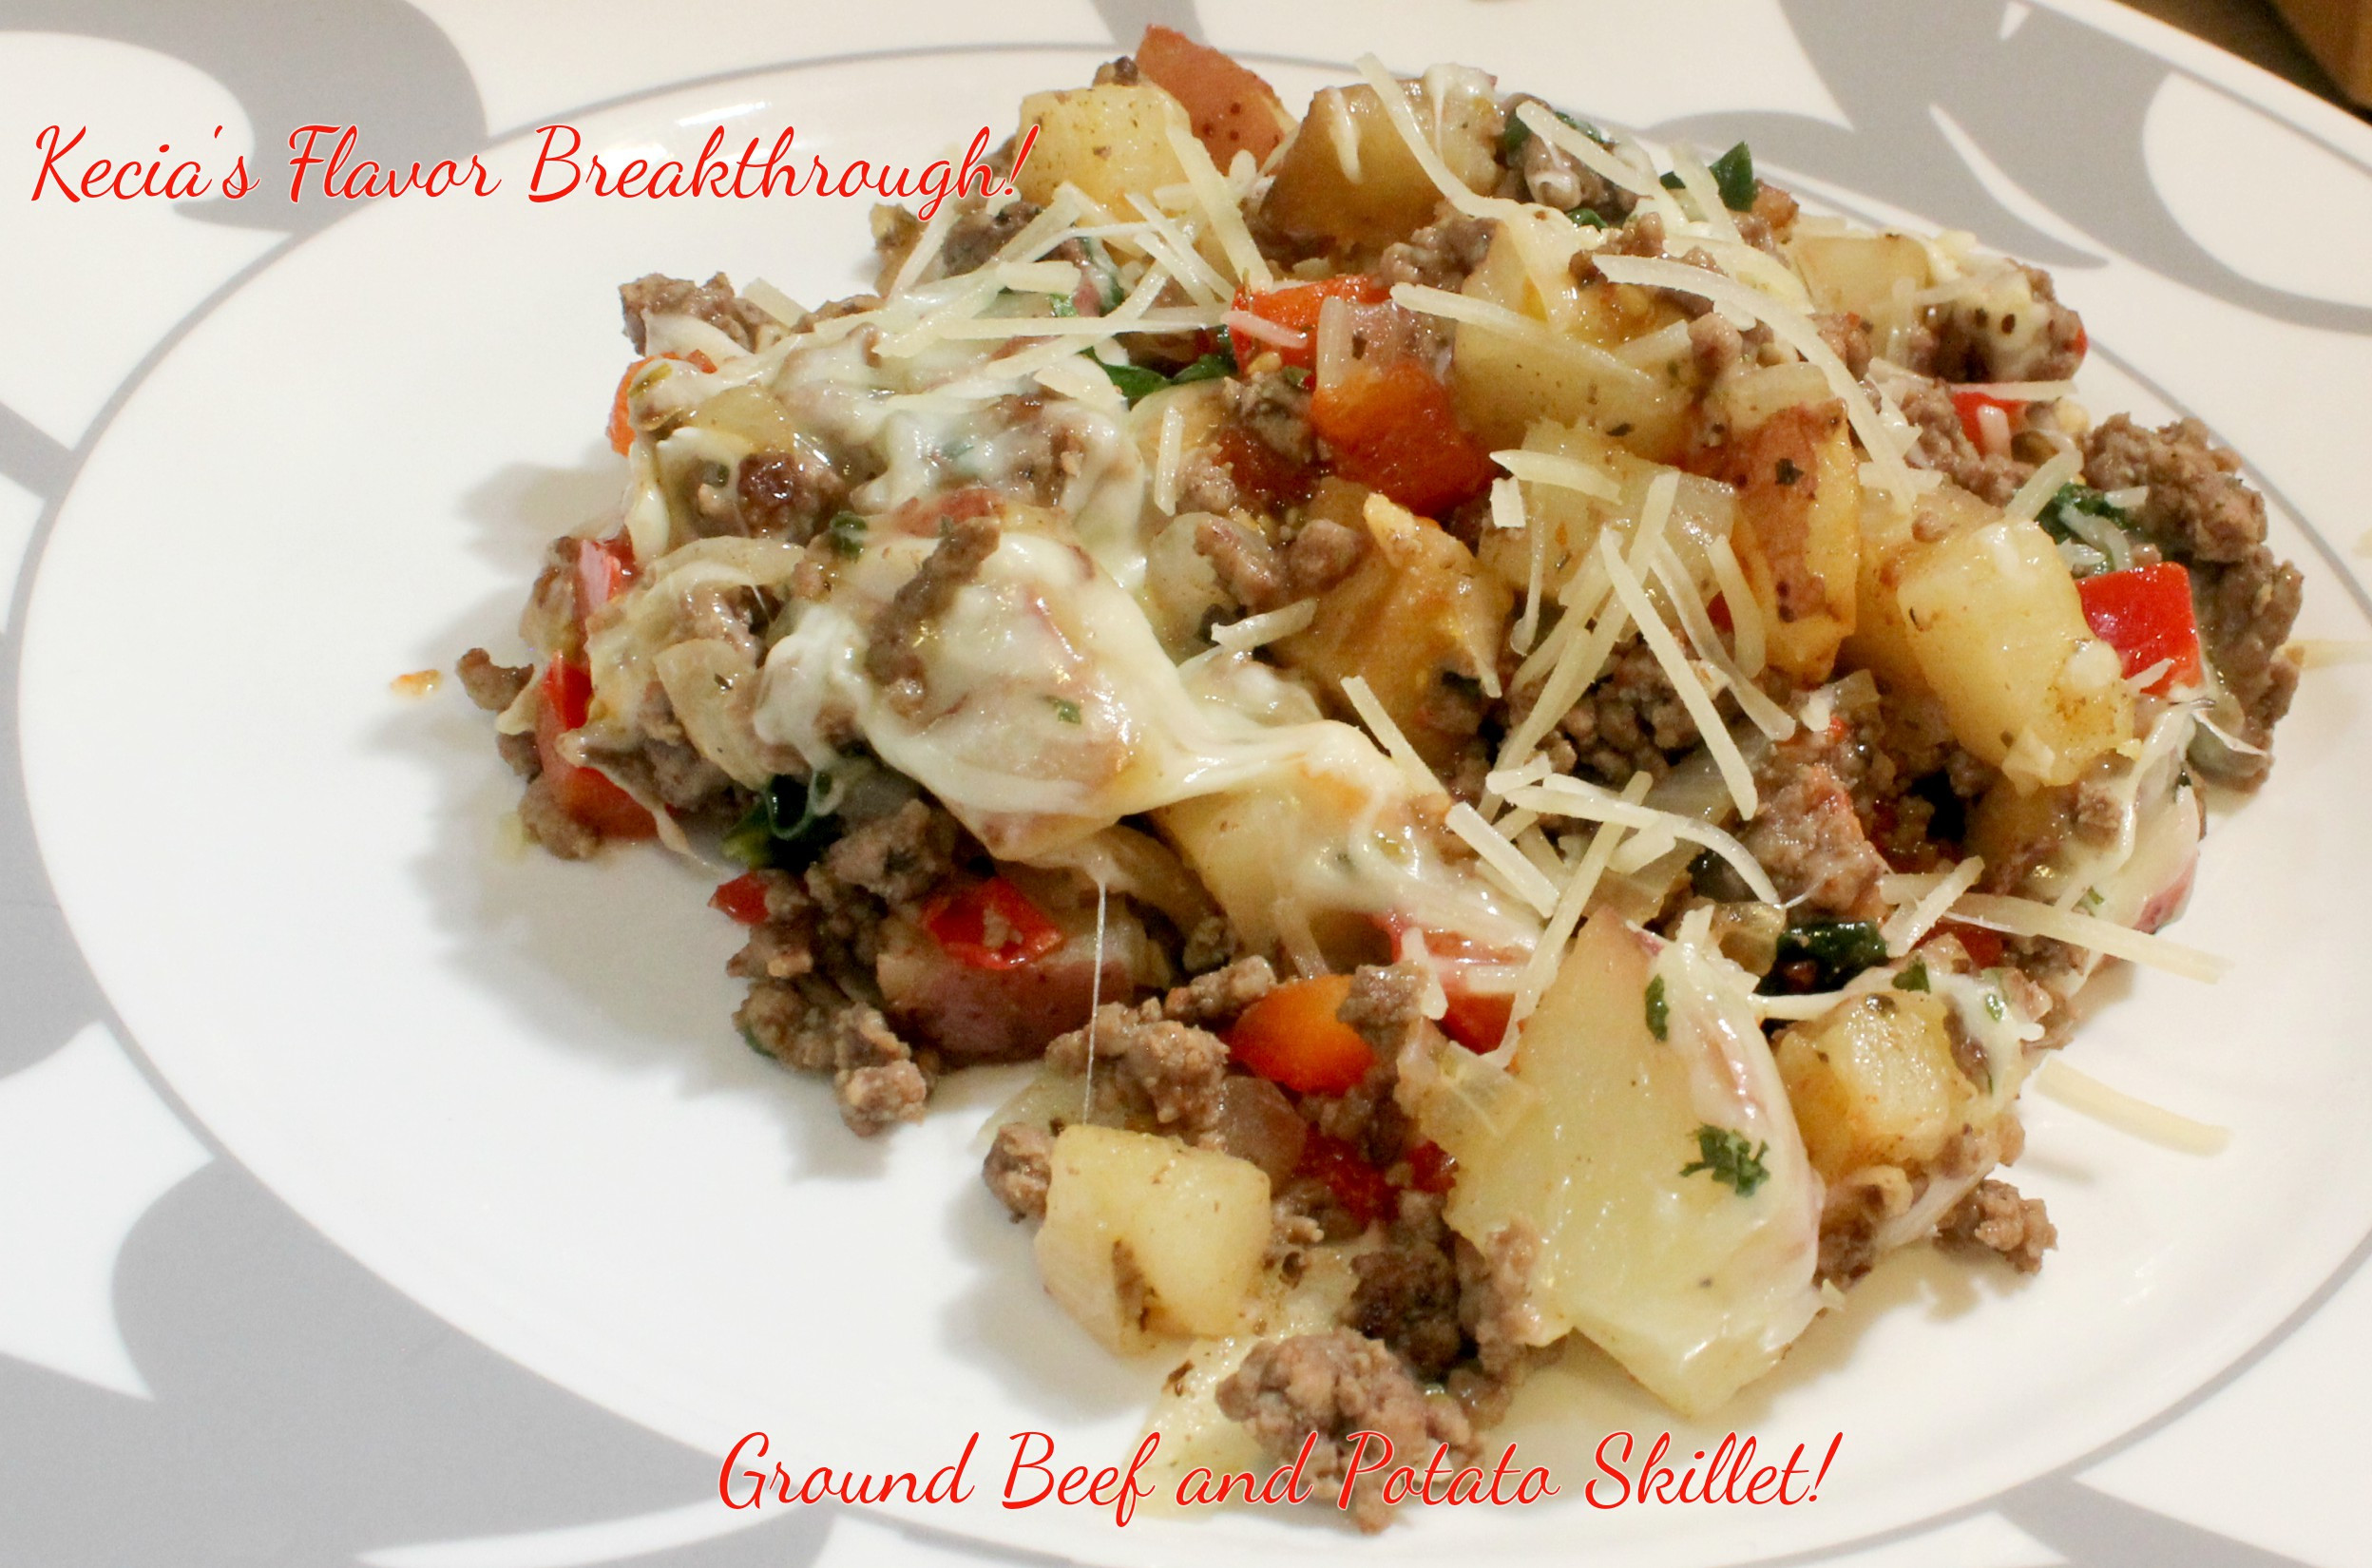 Ground Beef And Potatoes Recipes  ground beef and potatoes skillet